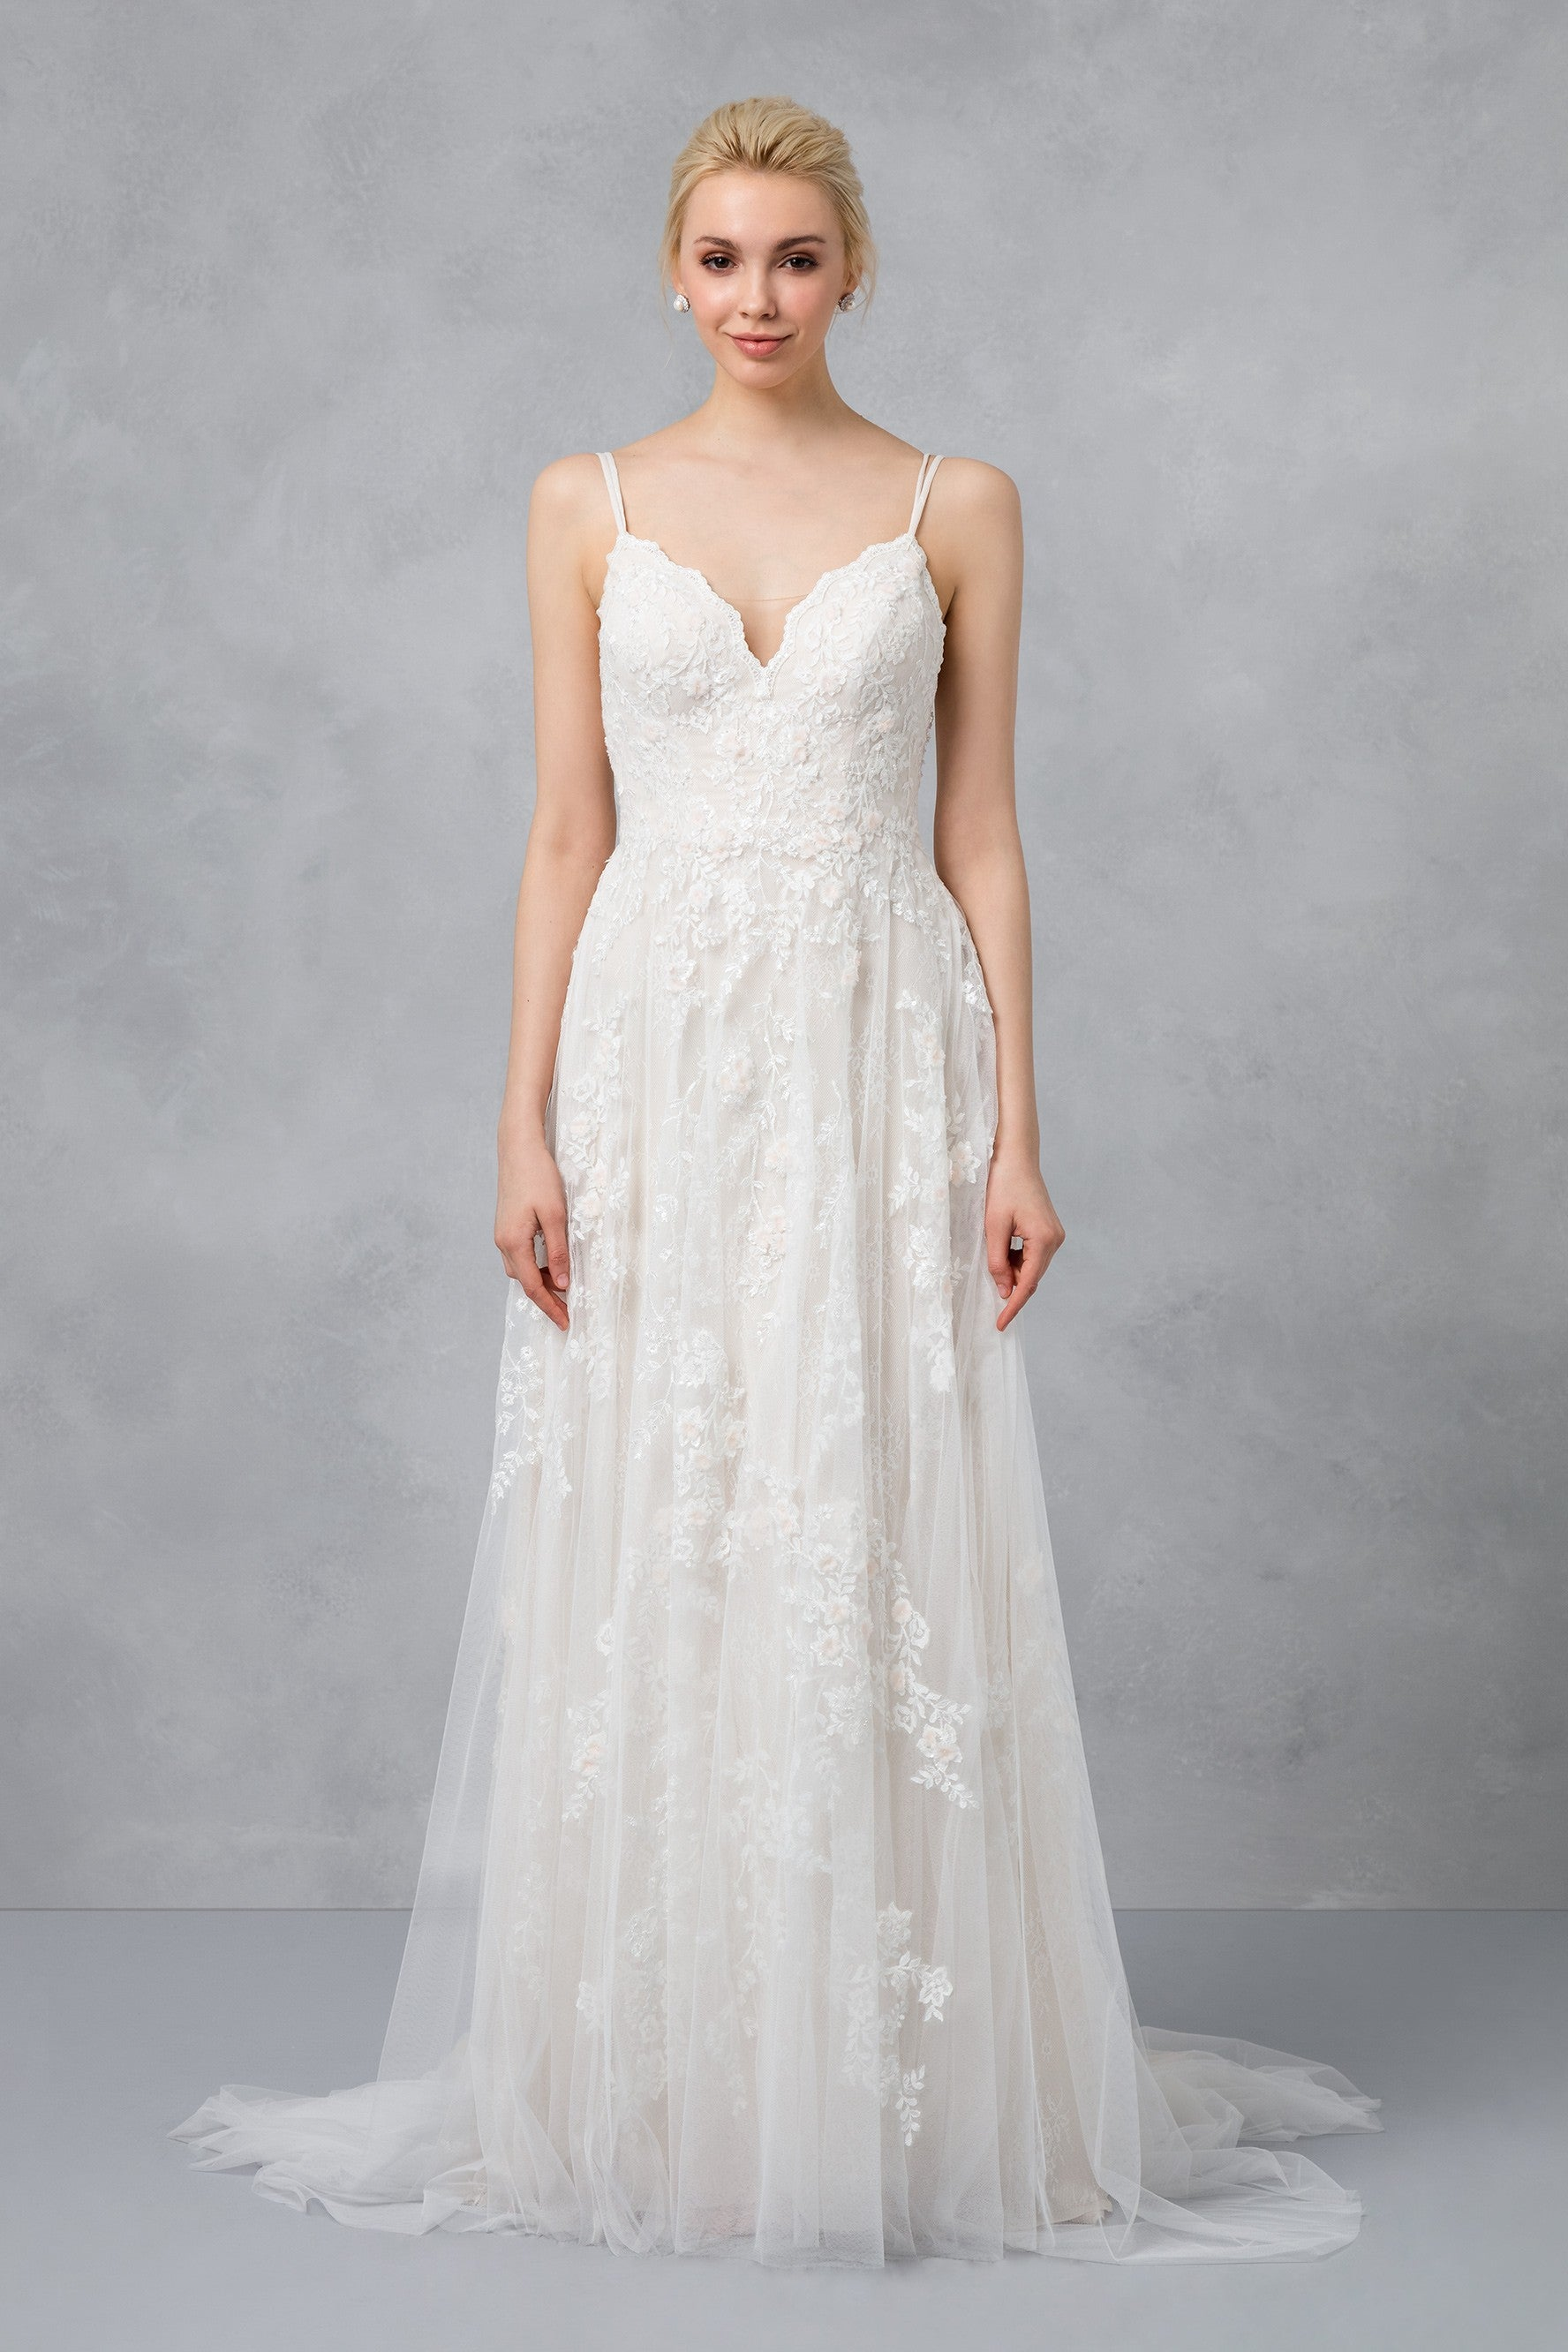 petite scalloped wedding dress with double straps7ms251177